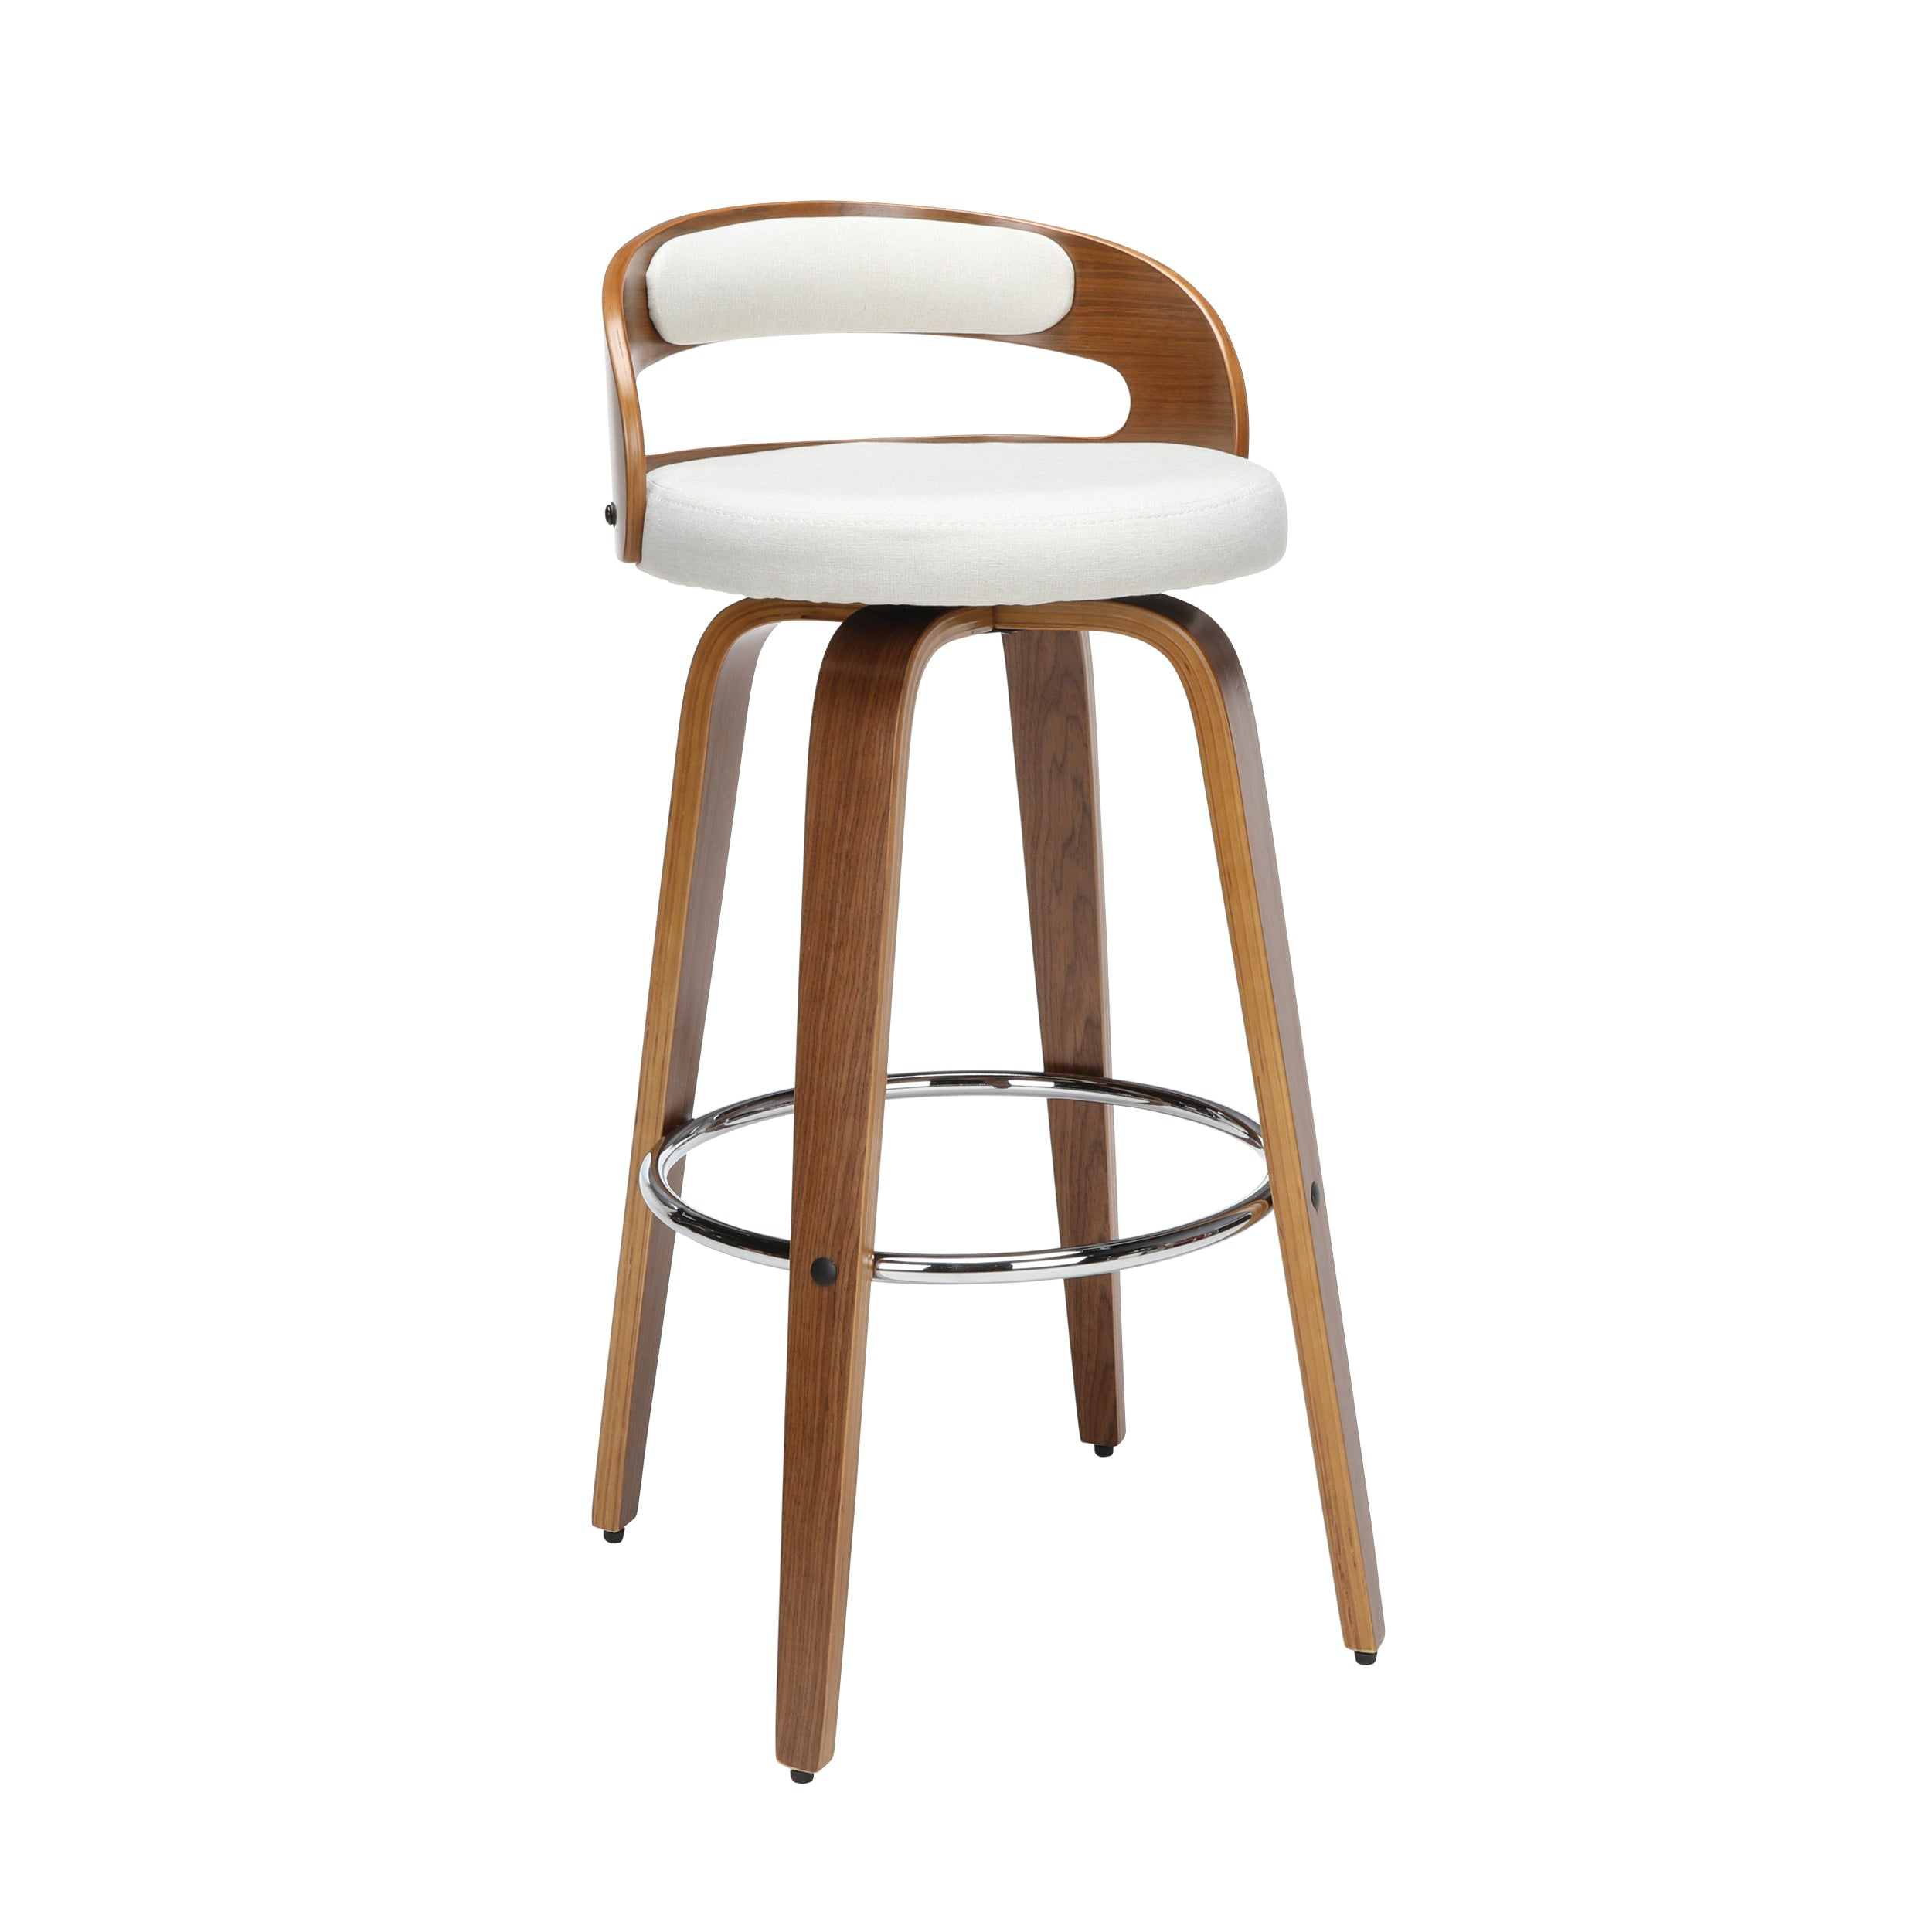 "30"" Low Back Bentwood Frame Swivel Seat Stool with Fabric Cushion"